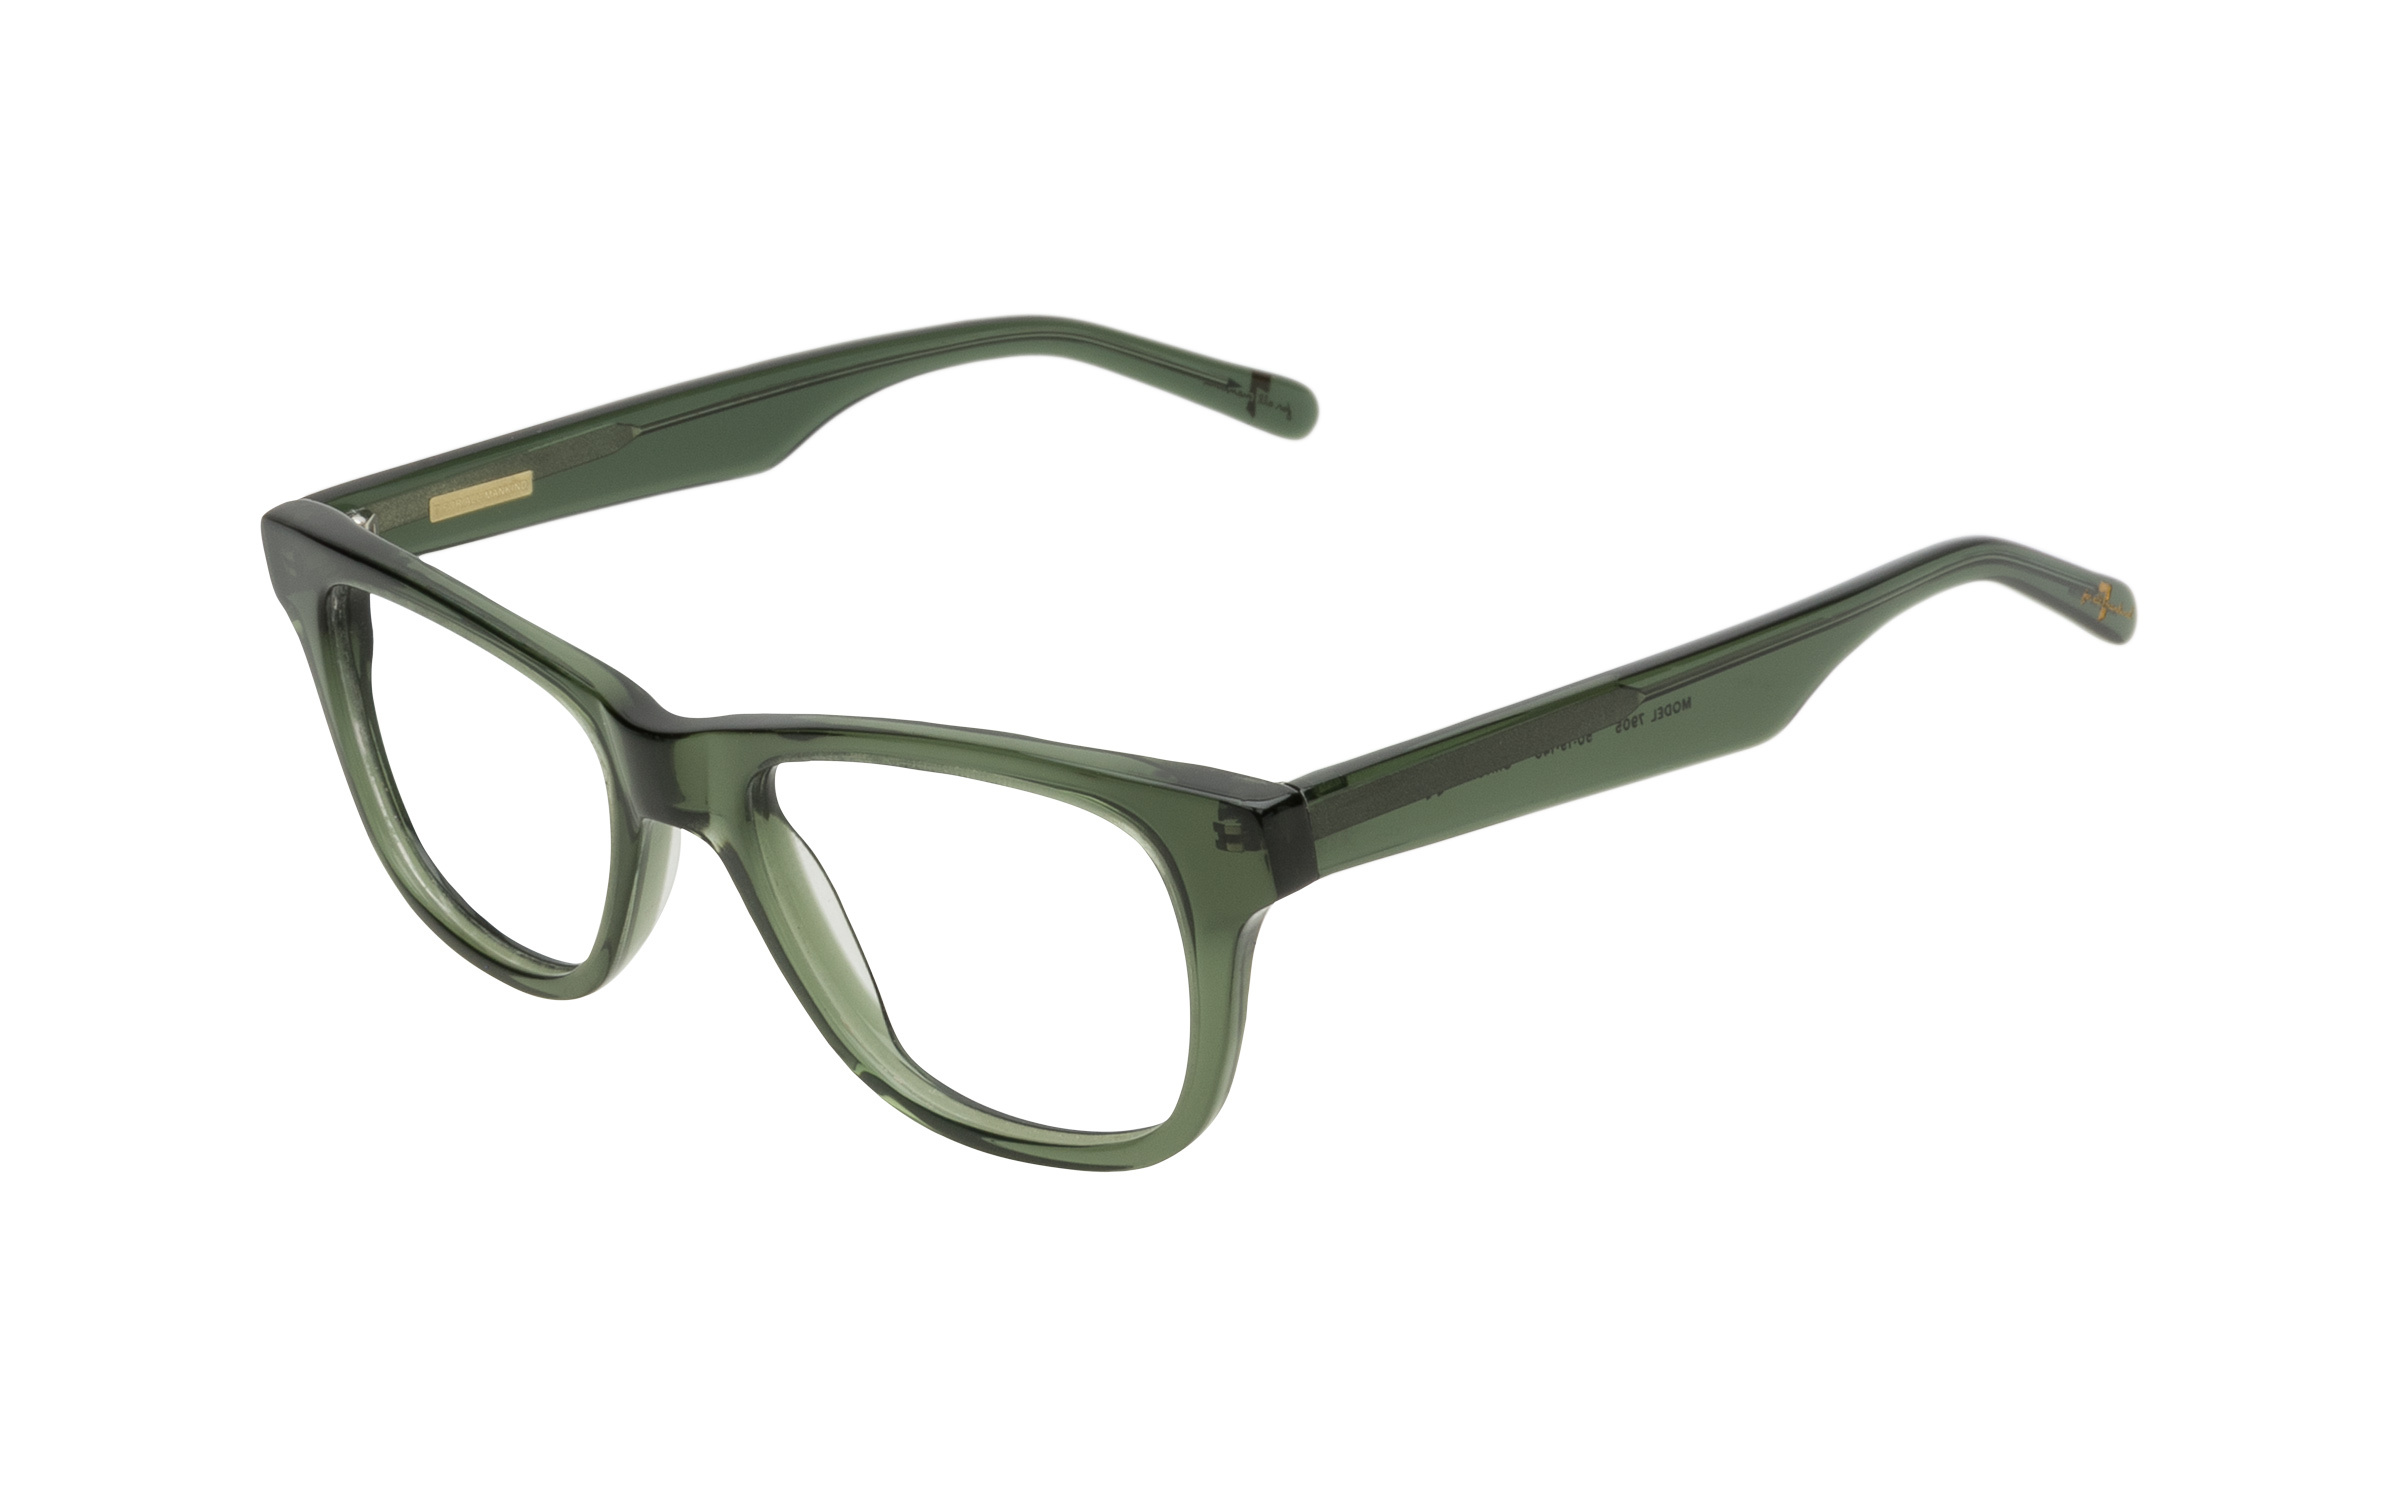 7 for All Mankind Glasses Vintage Green Acetate Online Clearly